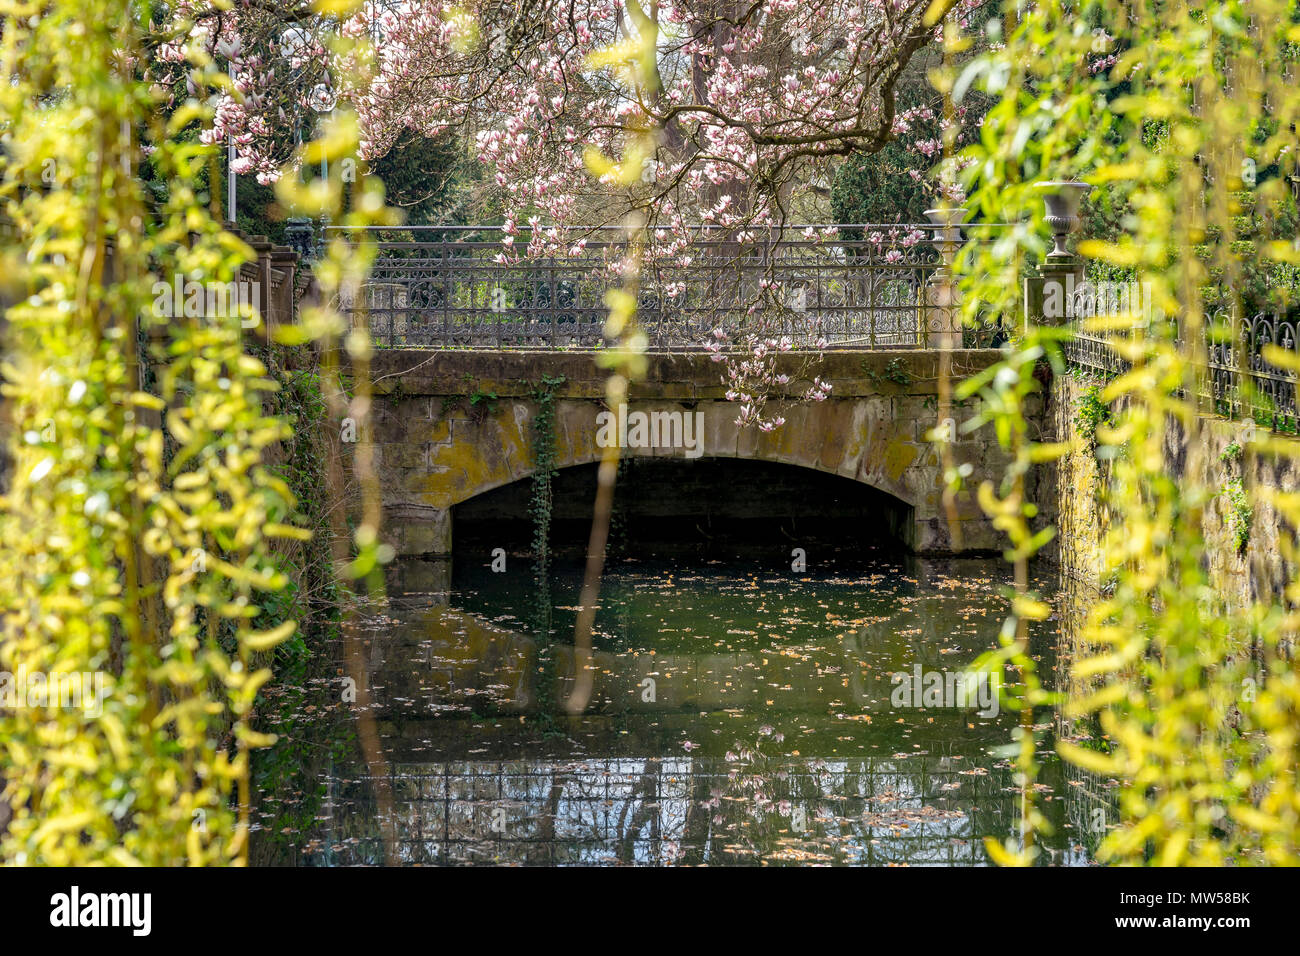 Weeping willow tree curtain with willow blossoms in spring. In the background a small bridge. - Stock Image